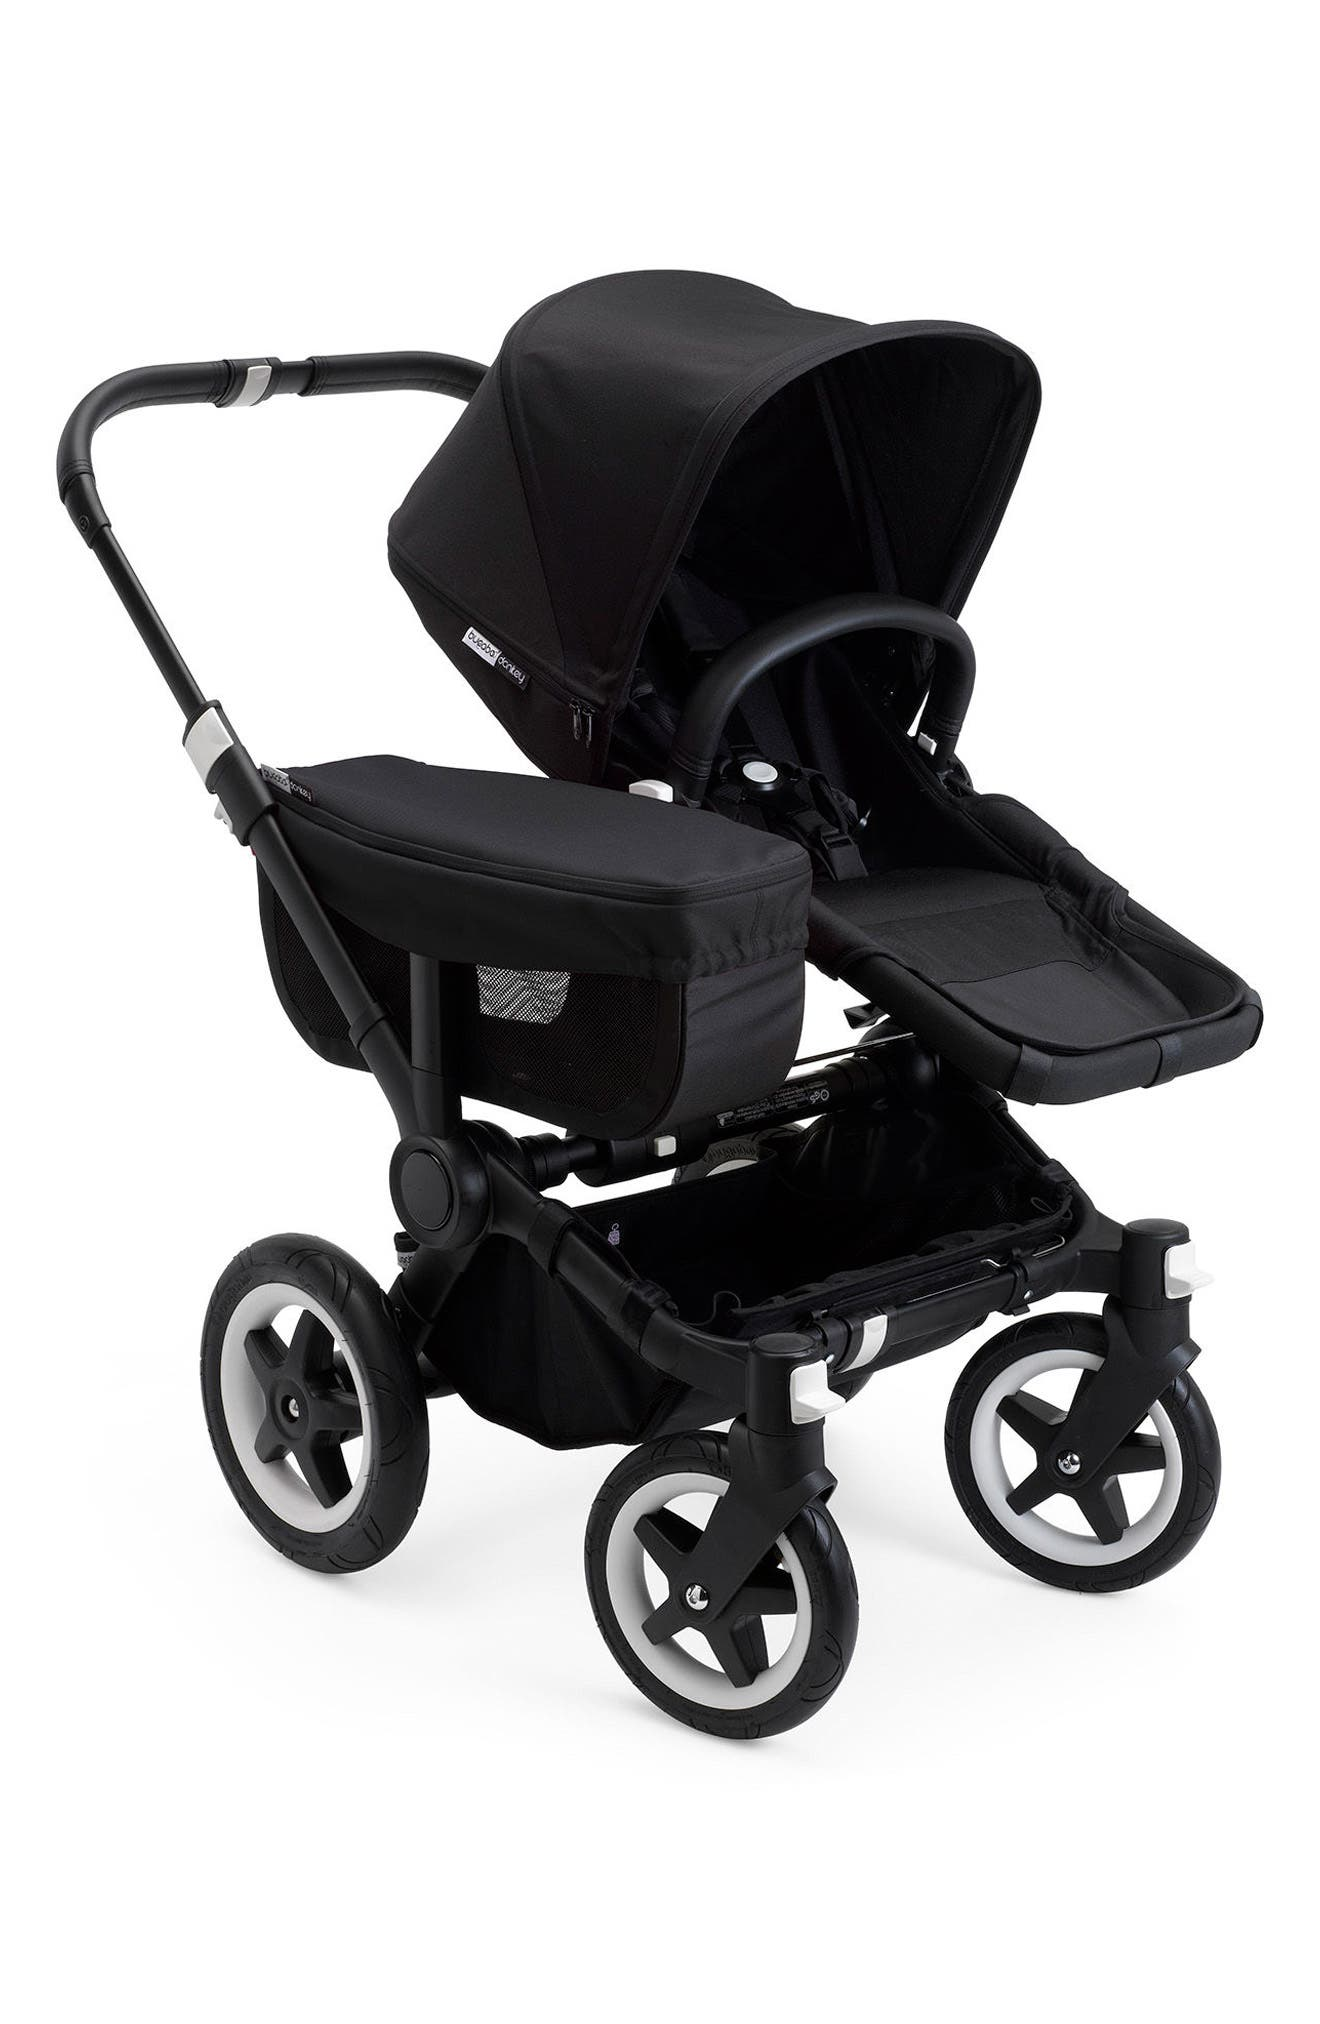 Donkey2 Mono Complete Stroller with Bassinet,                             Alternate thumbnail 2, color,                             BLACK